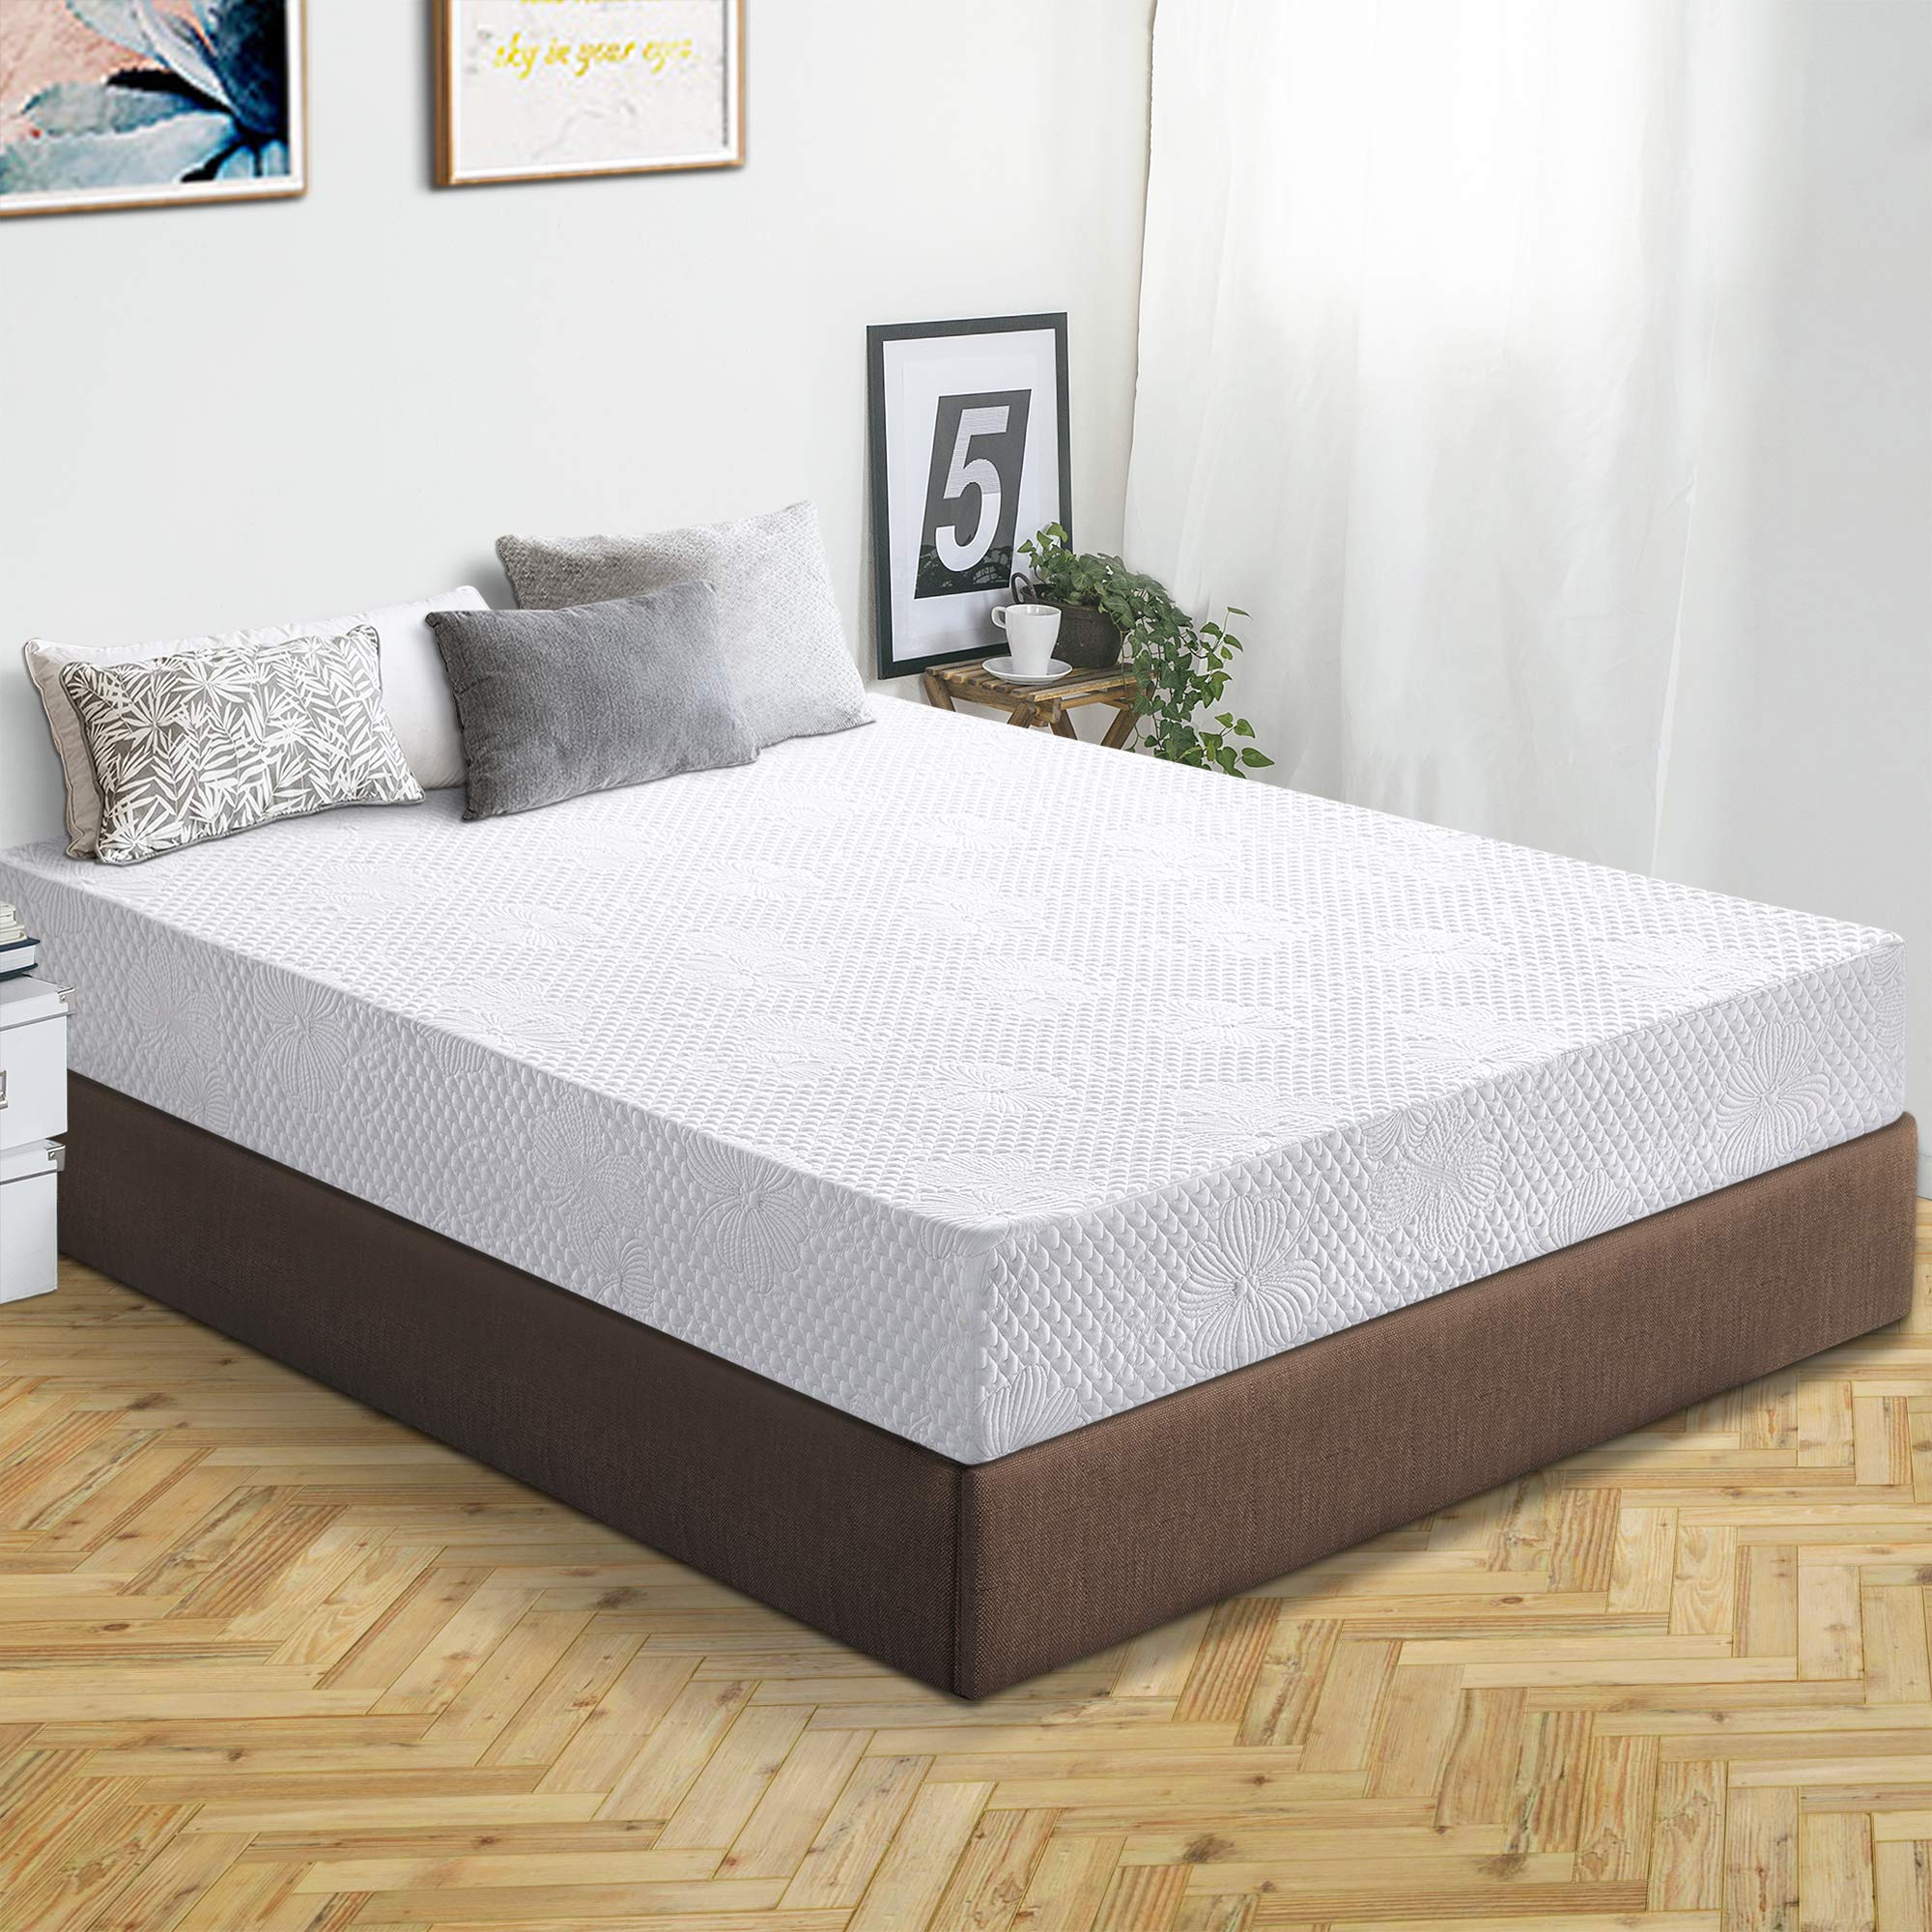 Olee Sleep 6 inch Ventilated Multi Layered Memory Foam Mattress by Olee Sleep